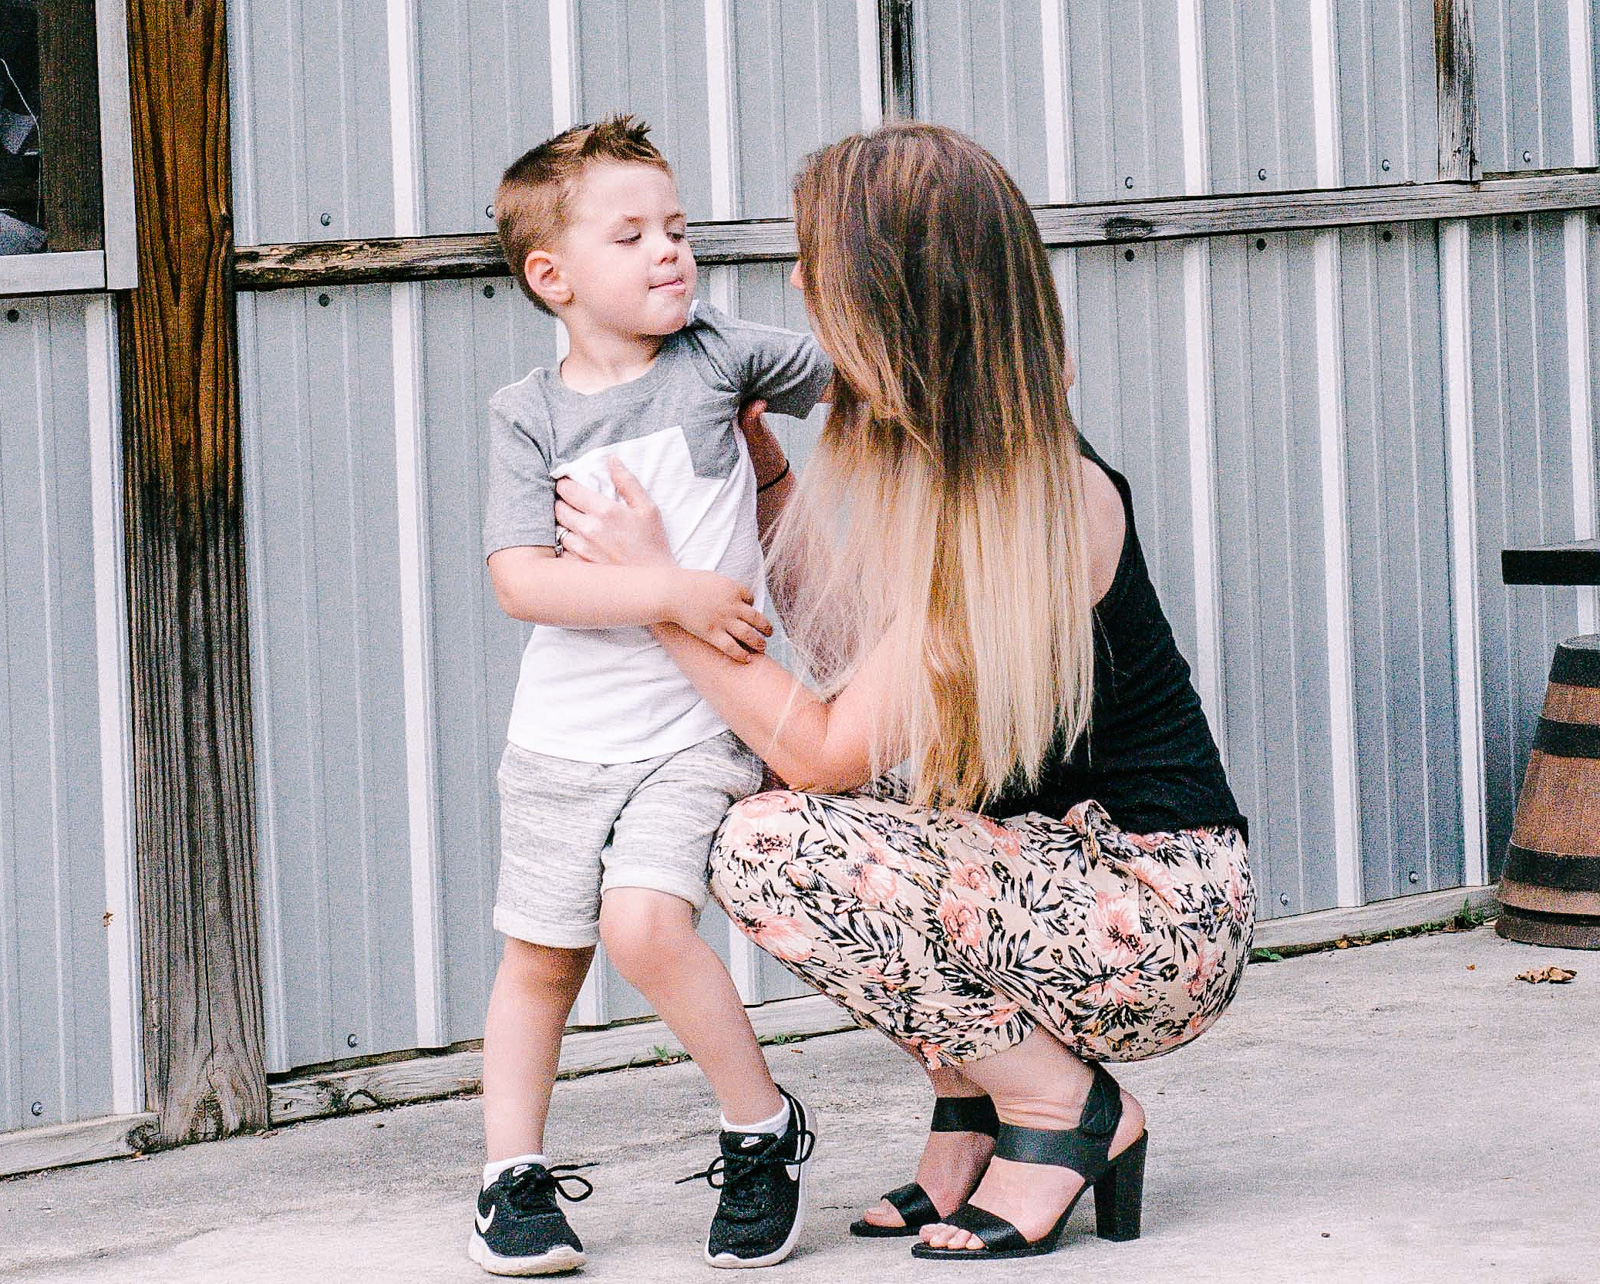 Kids Clothing and Kid's Outfit Ideas for Spring - Best Kids Fashion via lifestyle blogger Misty Nelson @frostedevents